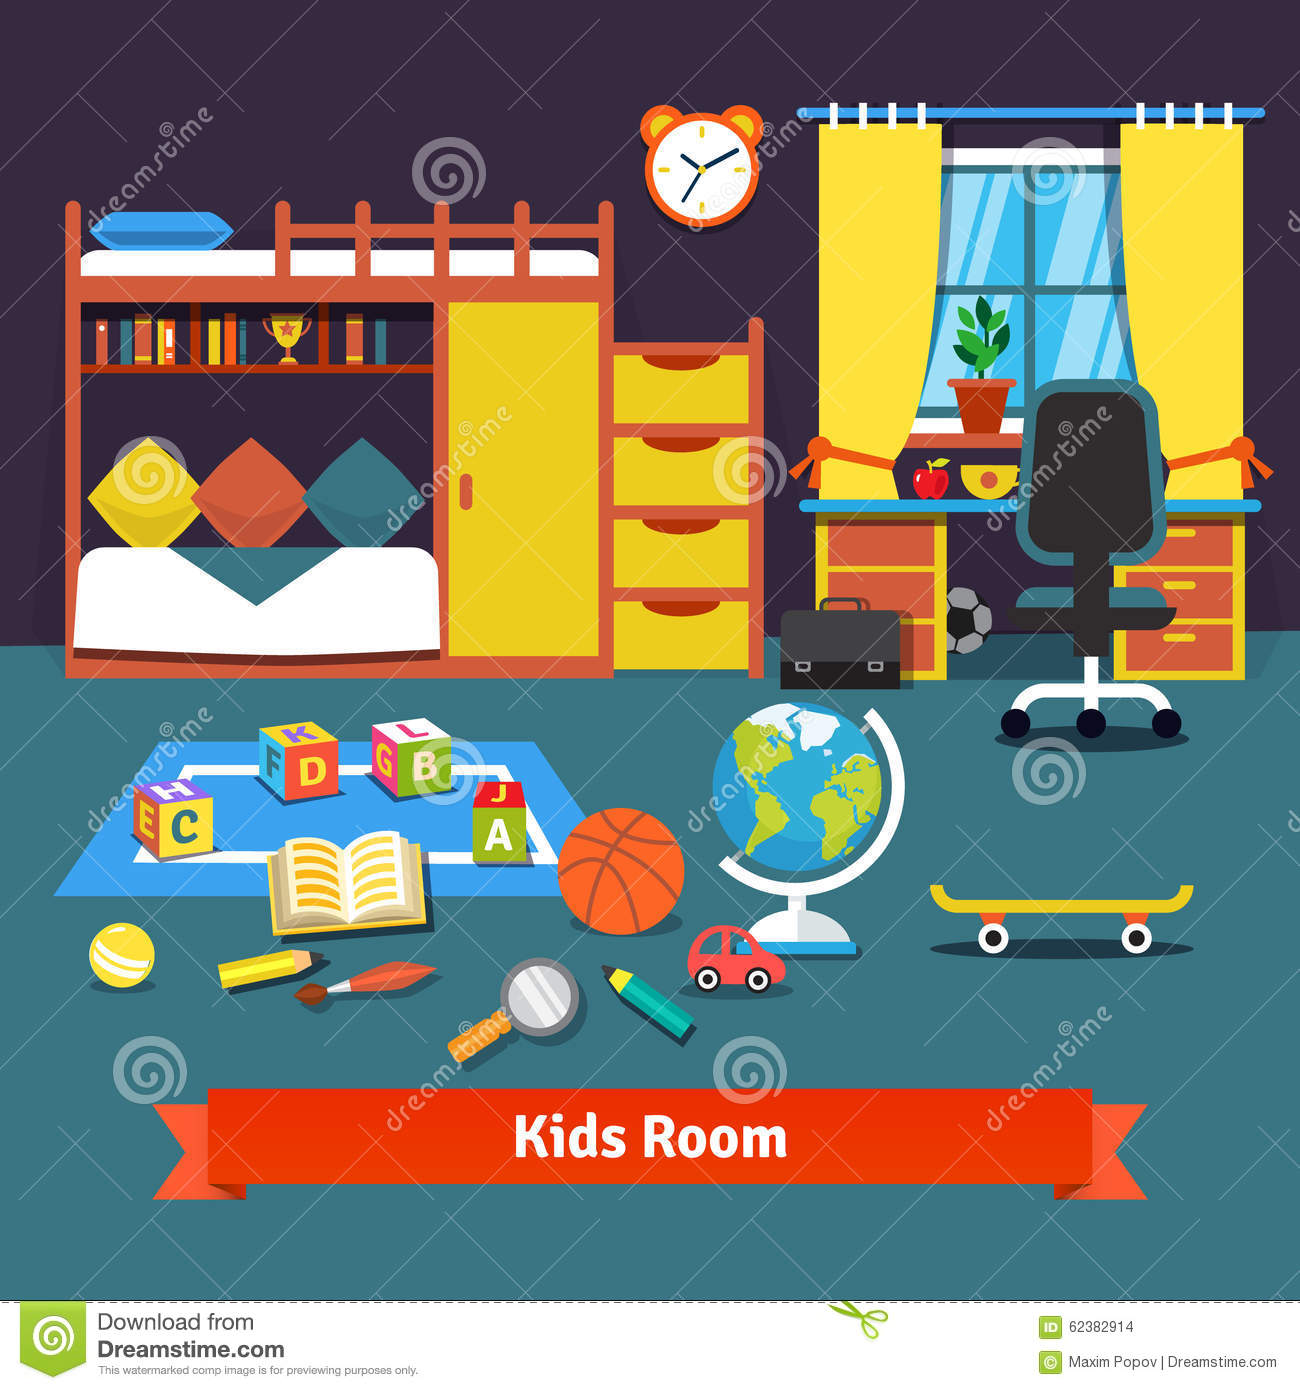 Two Kids Room With Bed, Desk, Chair And Toys Stock Vector